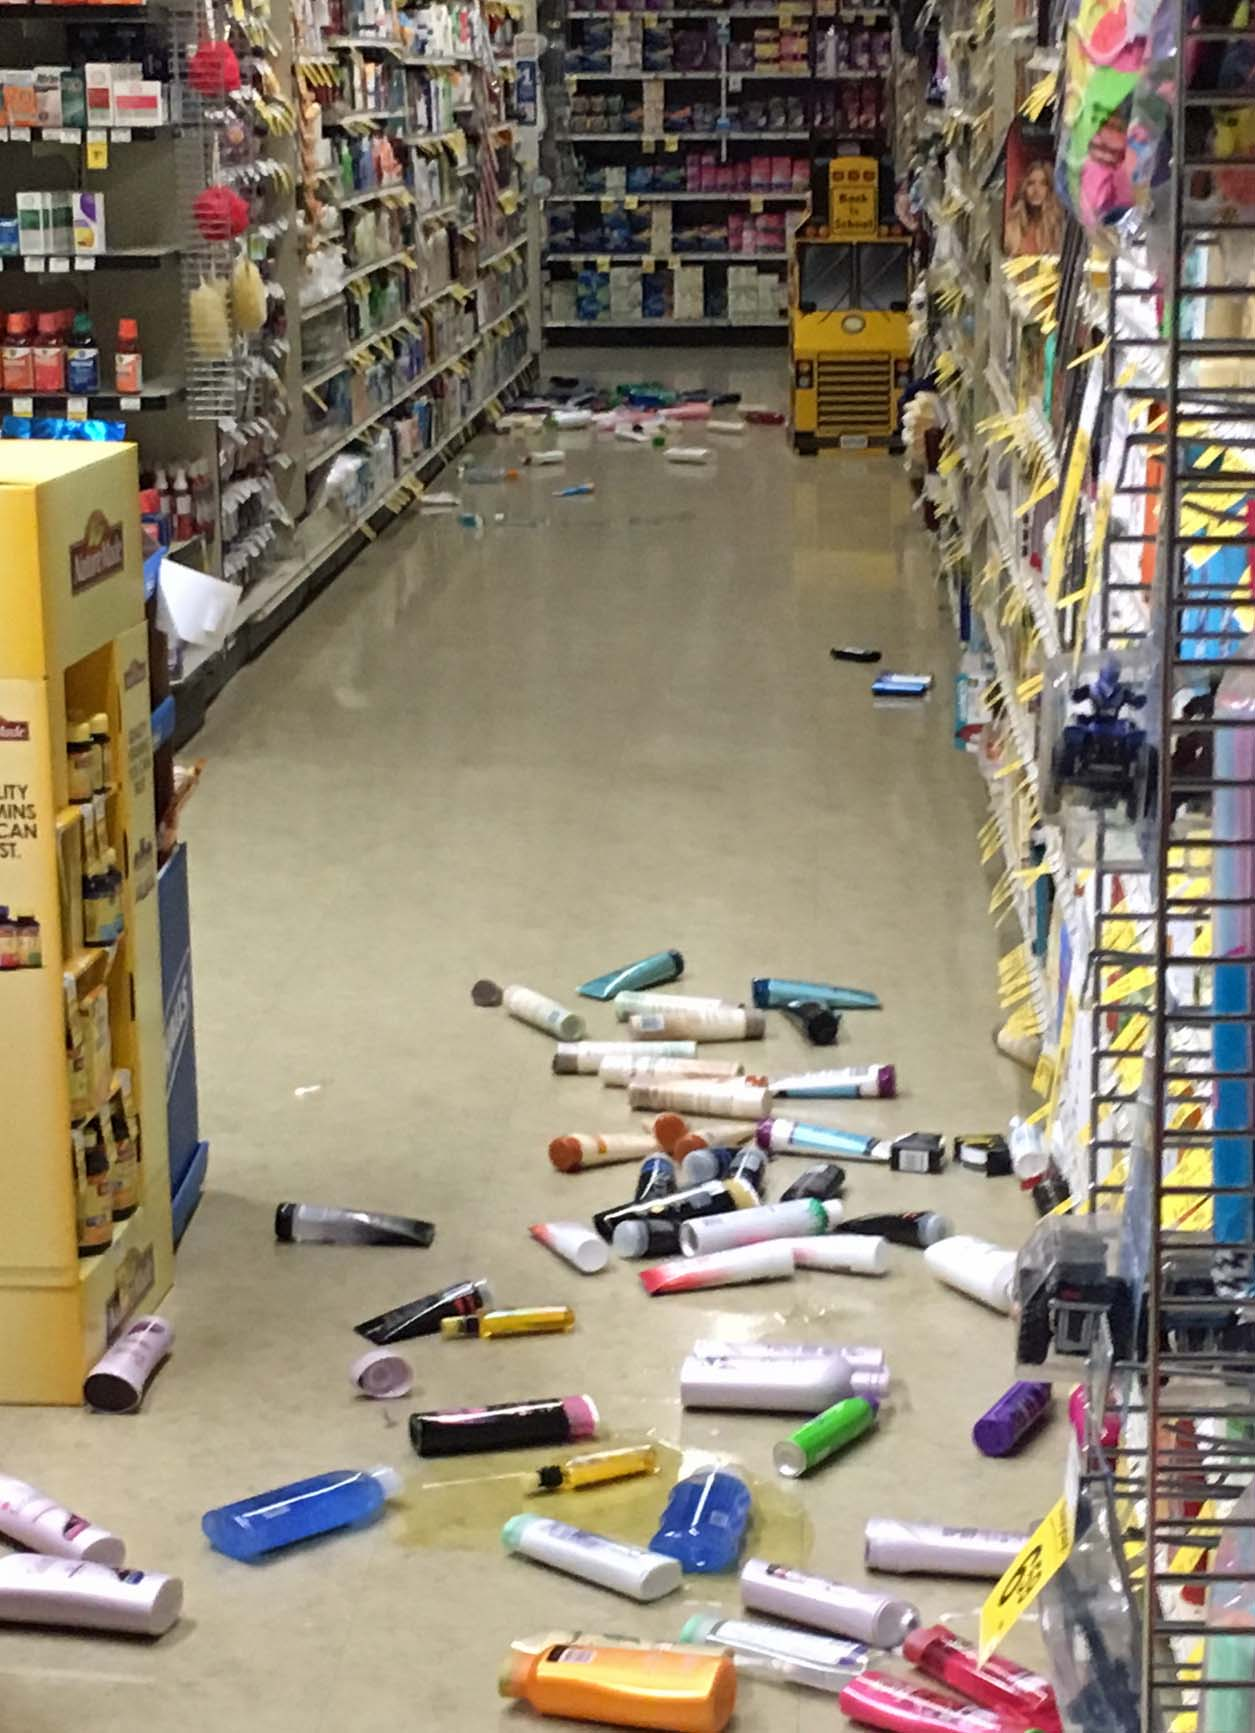 The Safeway in Homer had some cluttered aisles Sunday morning after the earthquake. (Photo by Perry Lynn )